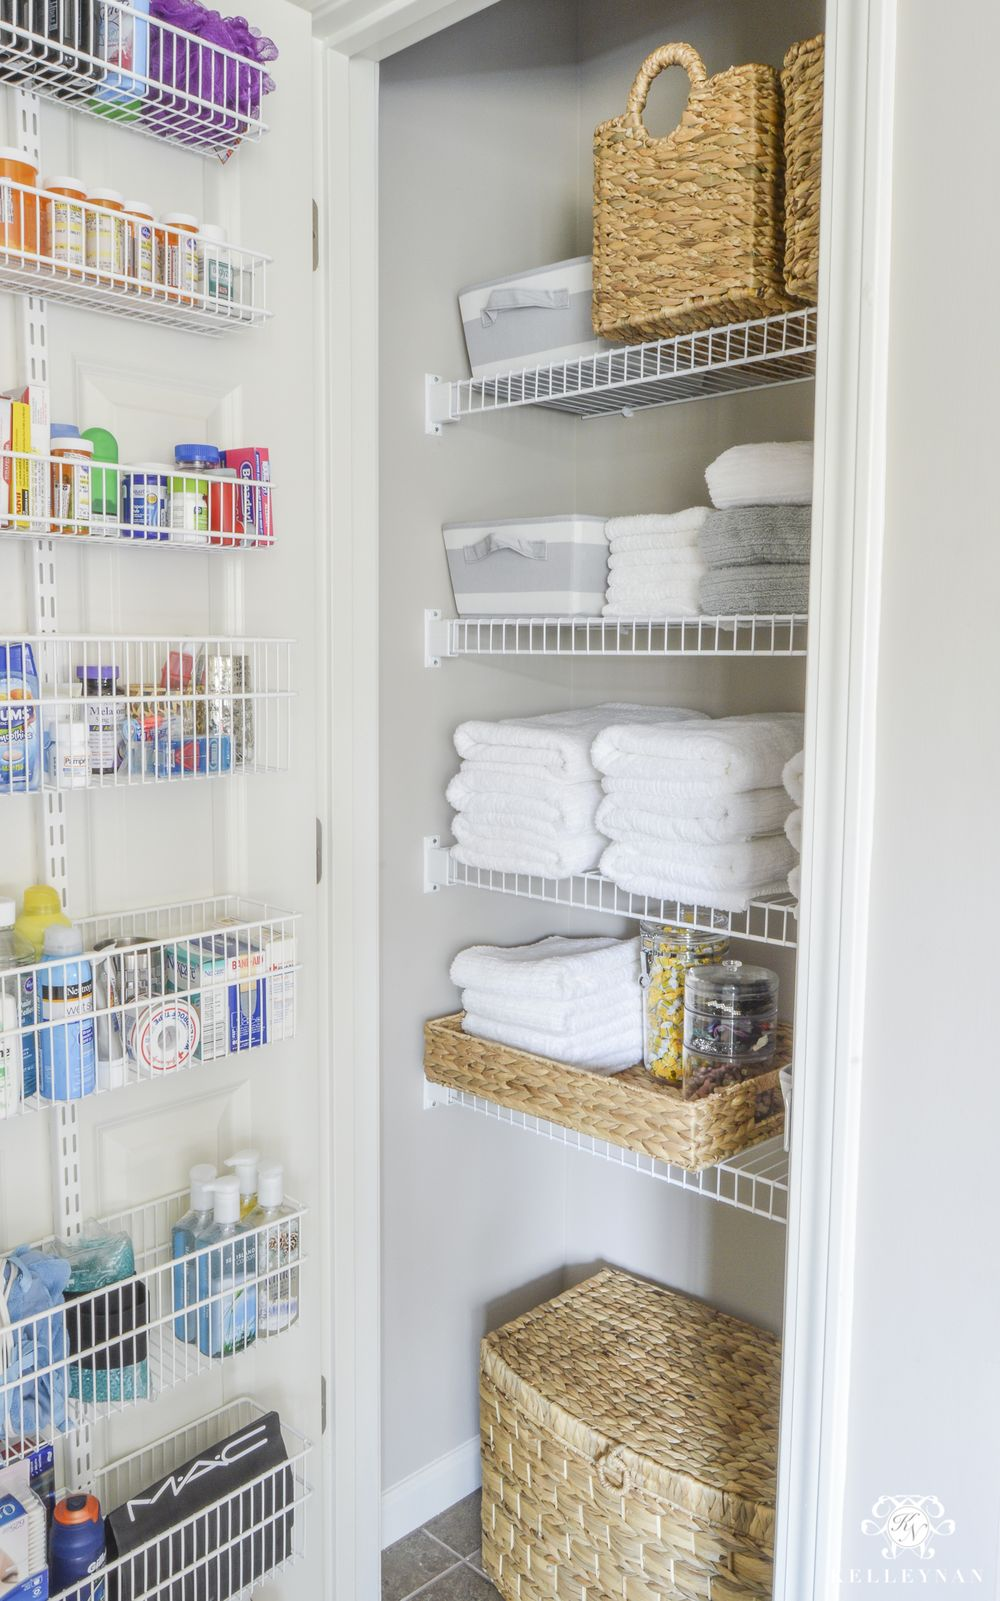 Bathroom Linen Closet Organization with White Shelves and Wicker Baskets via kelleynan